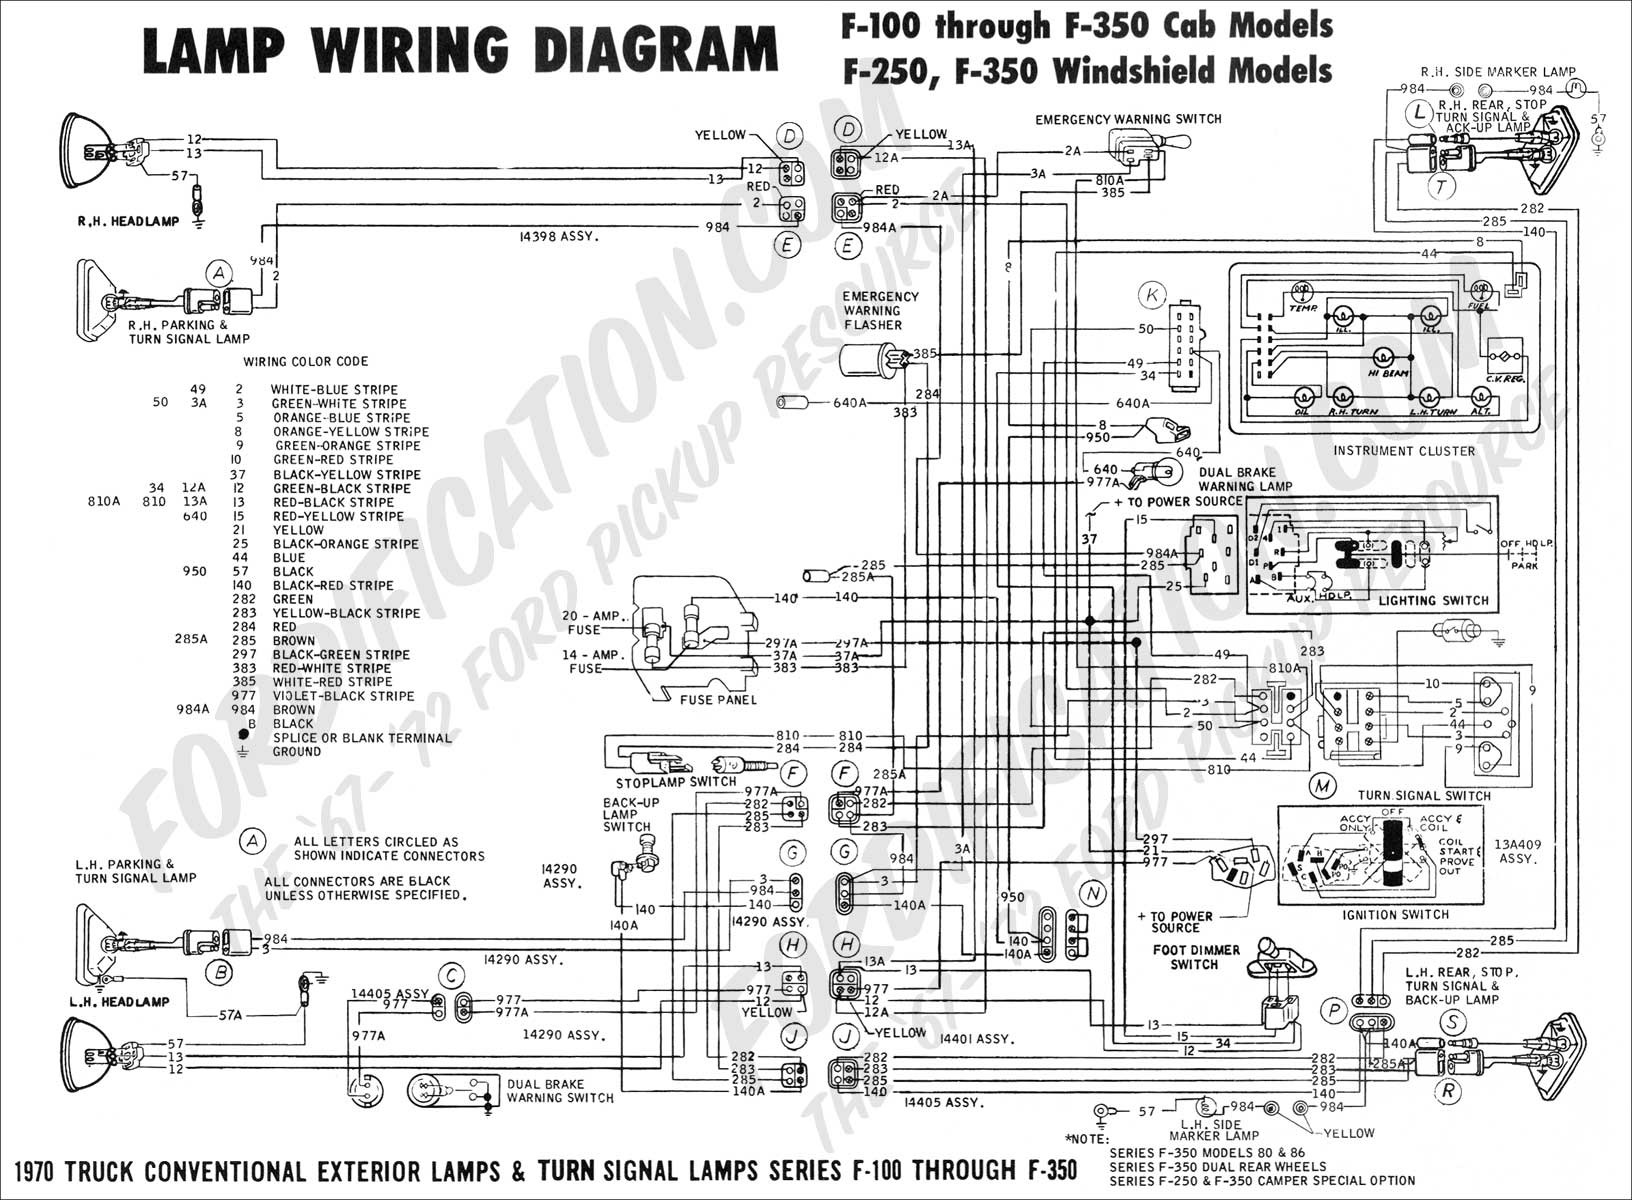 1993 Chevy 3500 Fuse Box Replacements together with Showthread as well F350 Wiring Harness moreover 1984 Fsj Grand Wagoneer Specification Diagrams also 1254962 Steering Column Wiring Diagram For A 1964 A. on wiring diagrams for trucks